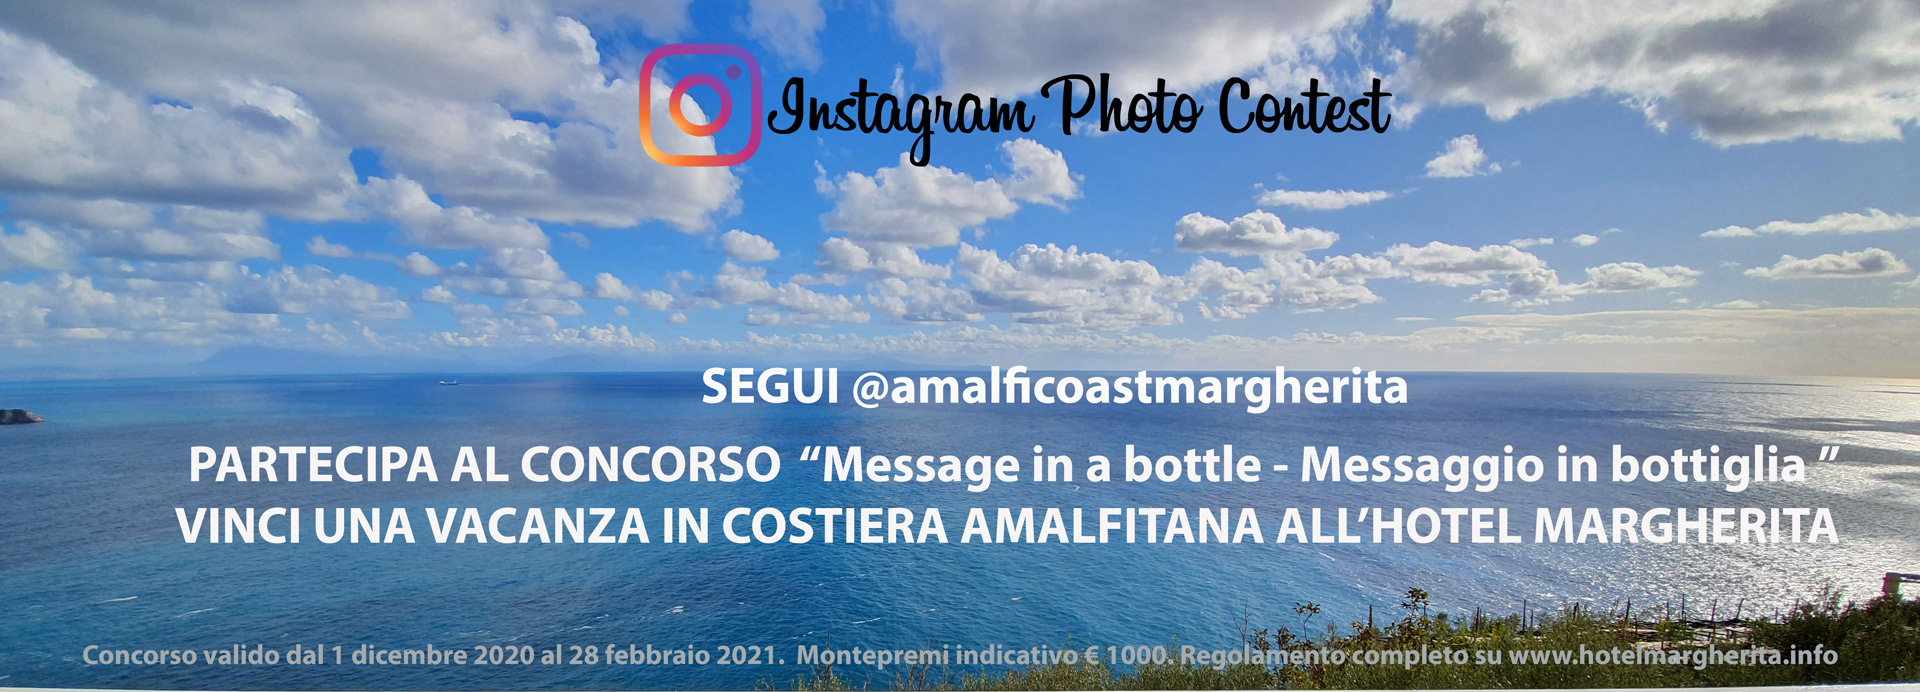 Instagram-Contest-Hotel-Margherita-Amalfi-Coast